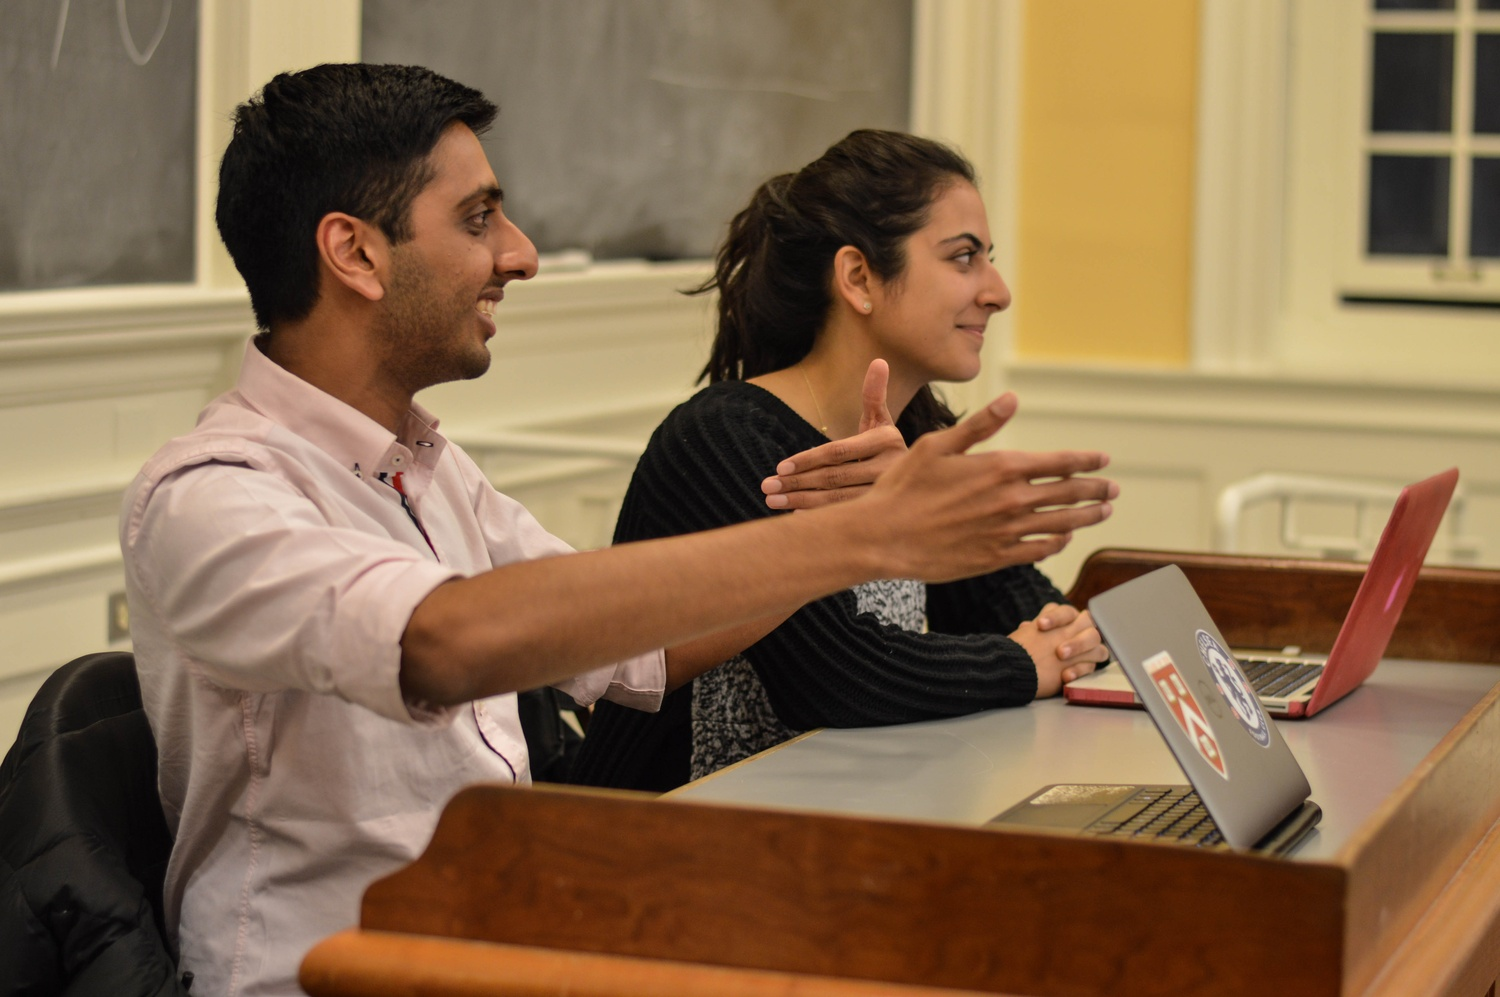 Undergraduate Council President Ava Nasrollahzadeh '16 and Vice President Dhruv P. Goyal '16.